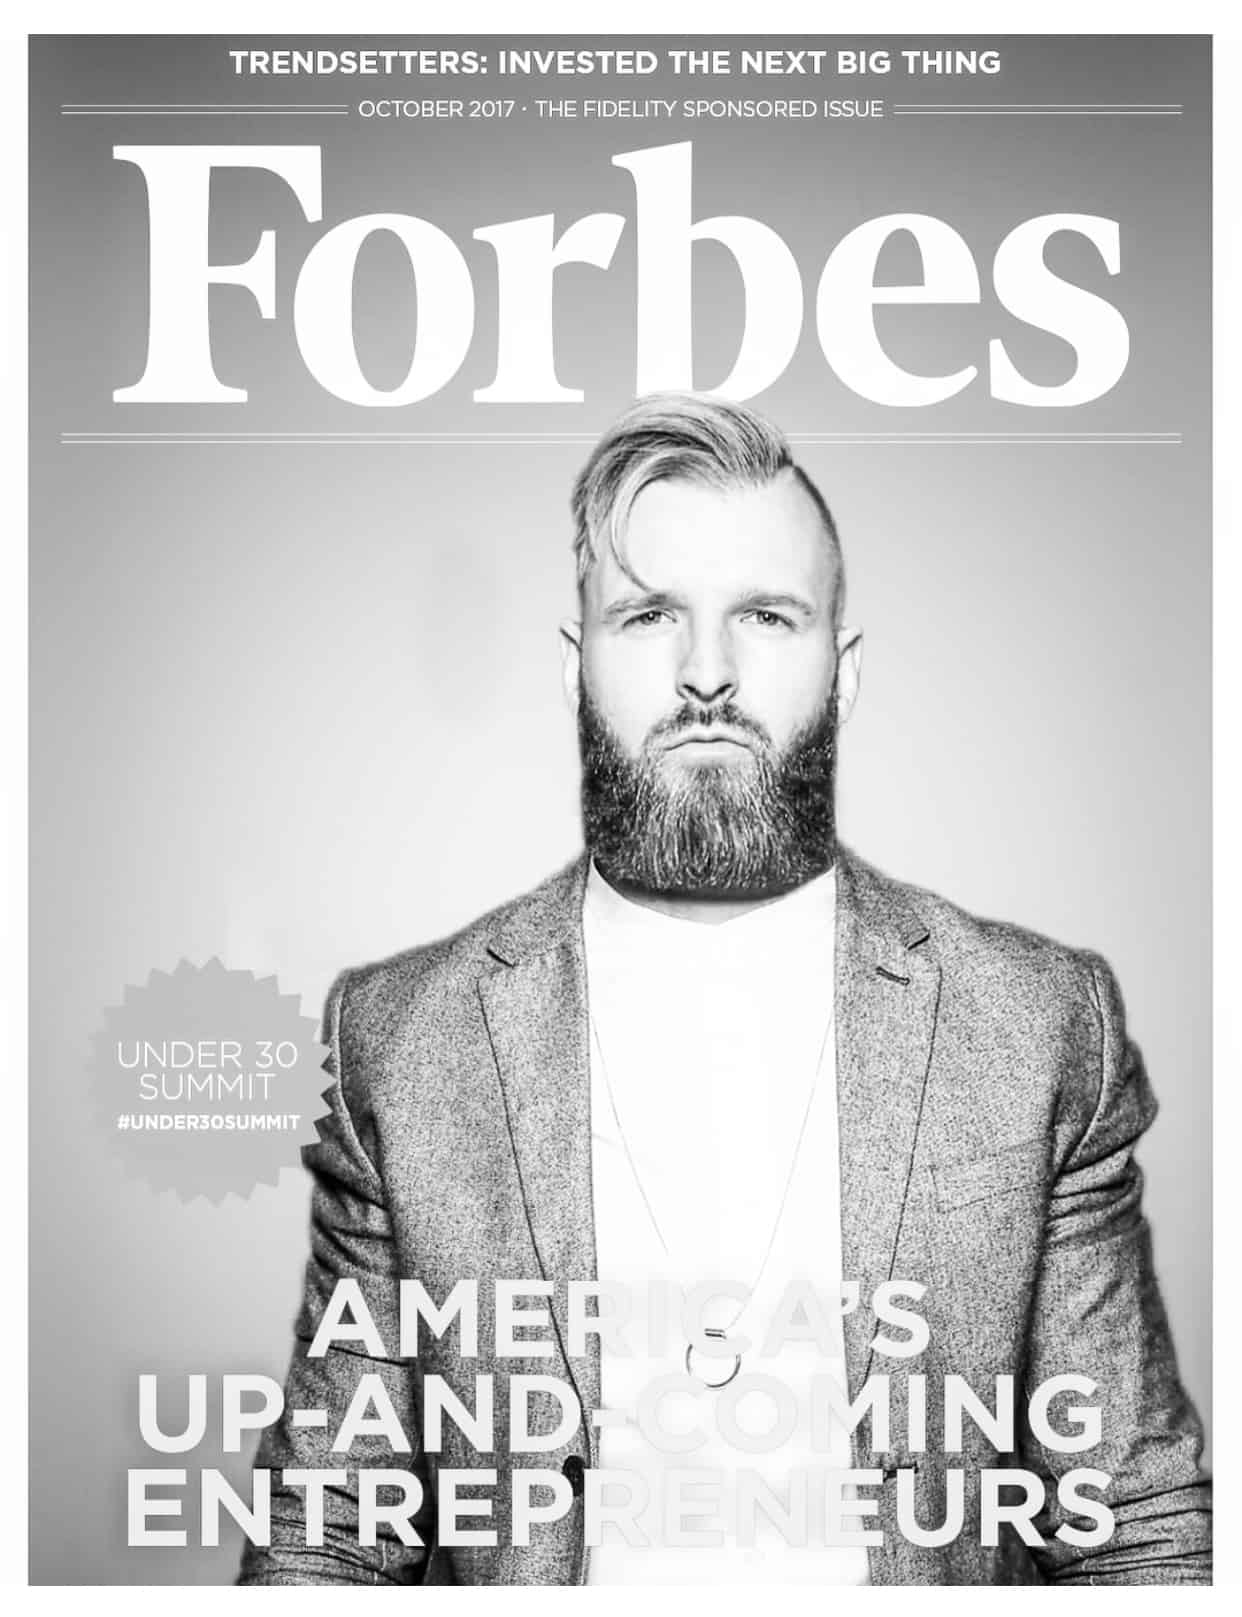 nik ingersoll forbes 30 under 30 food